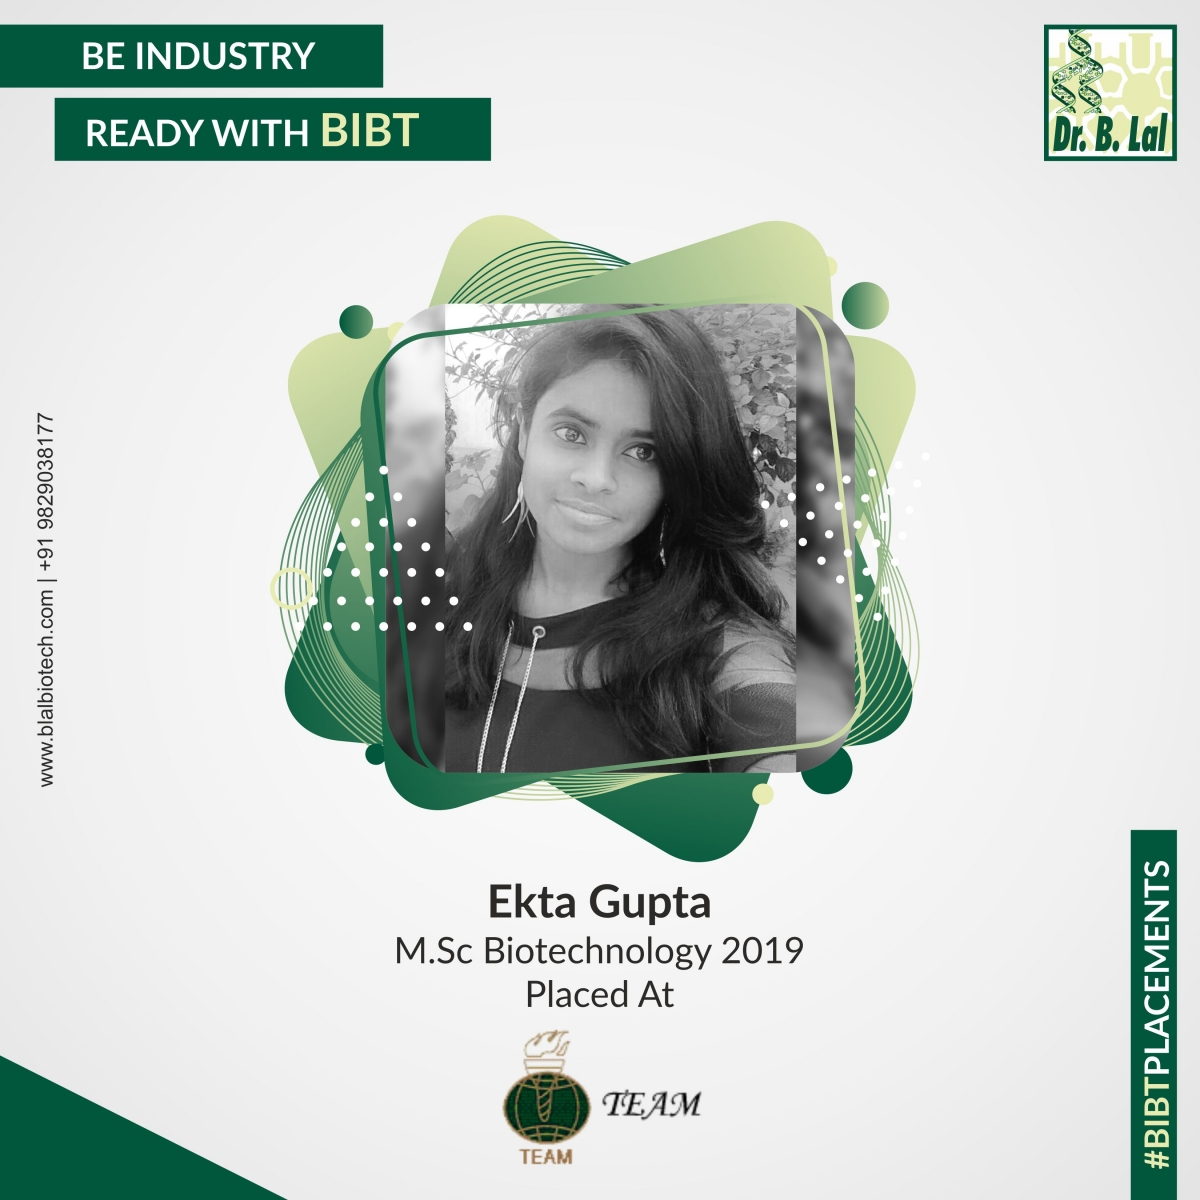 Ekta Gupta, M.Sc. Biotechnology 2019 | #BIBTPlacements